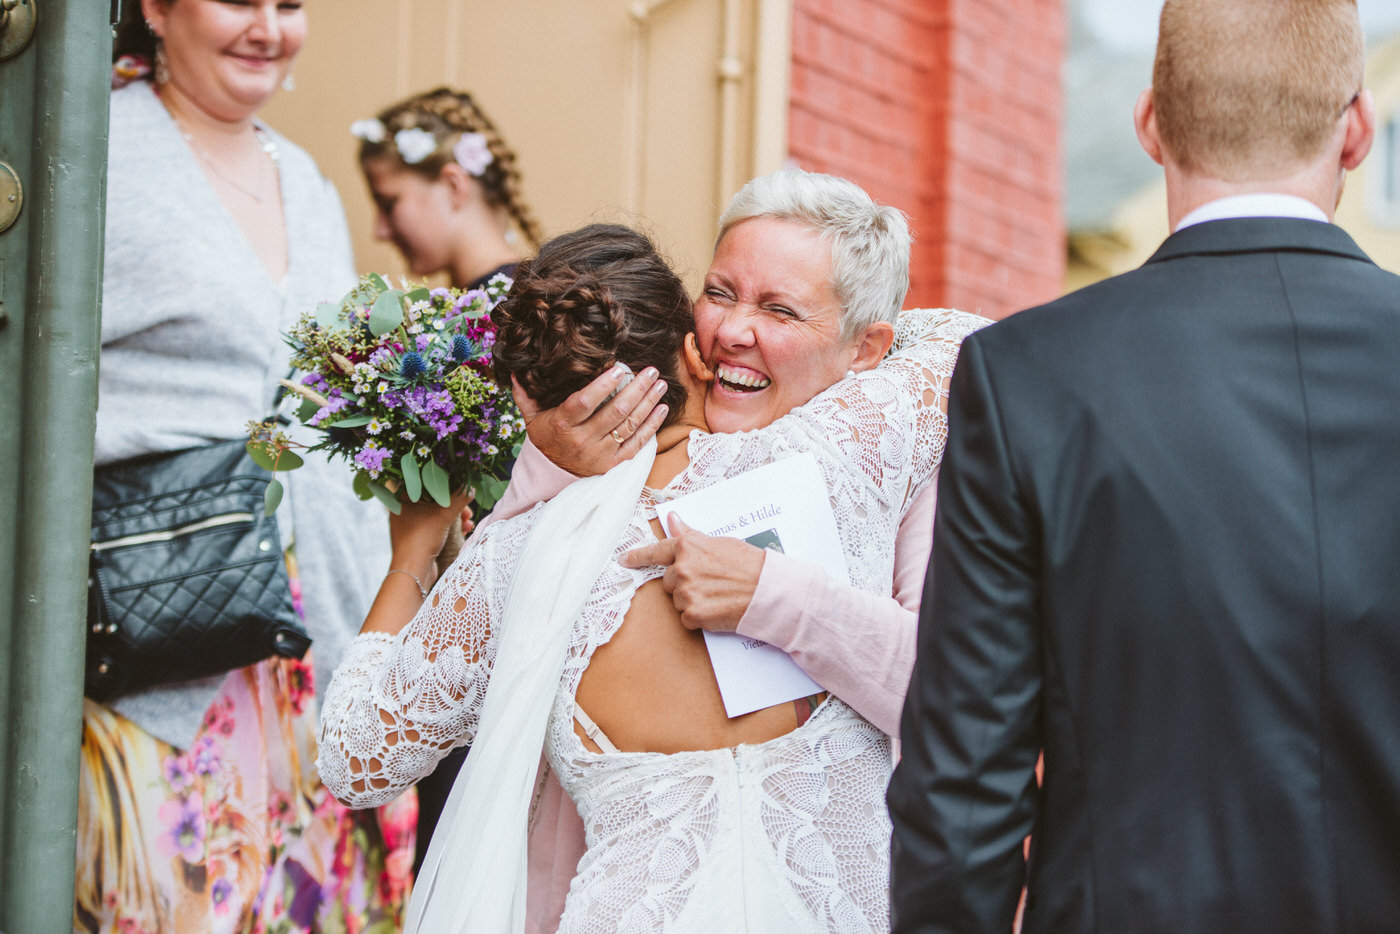 Mingling with your guests - Get your wedding timeline right!